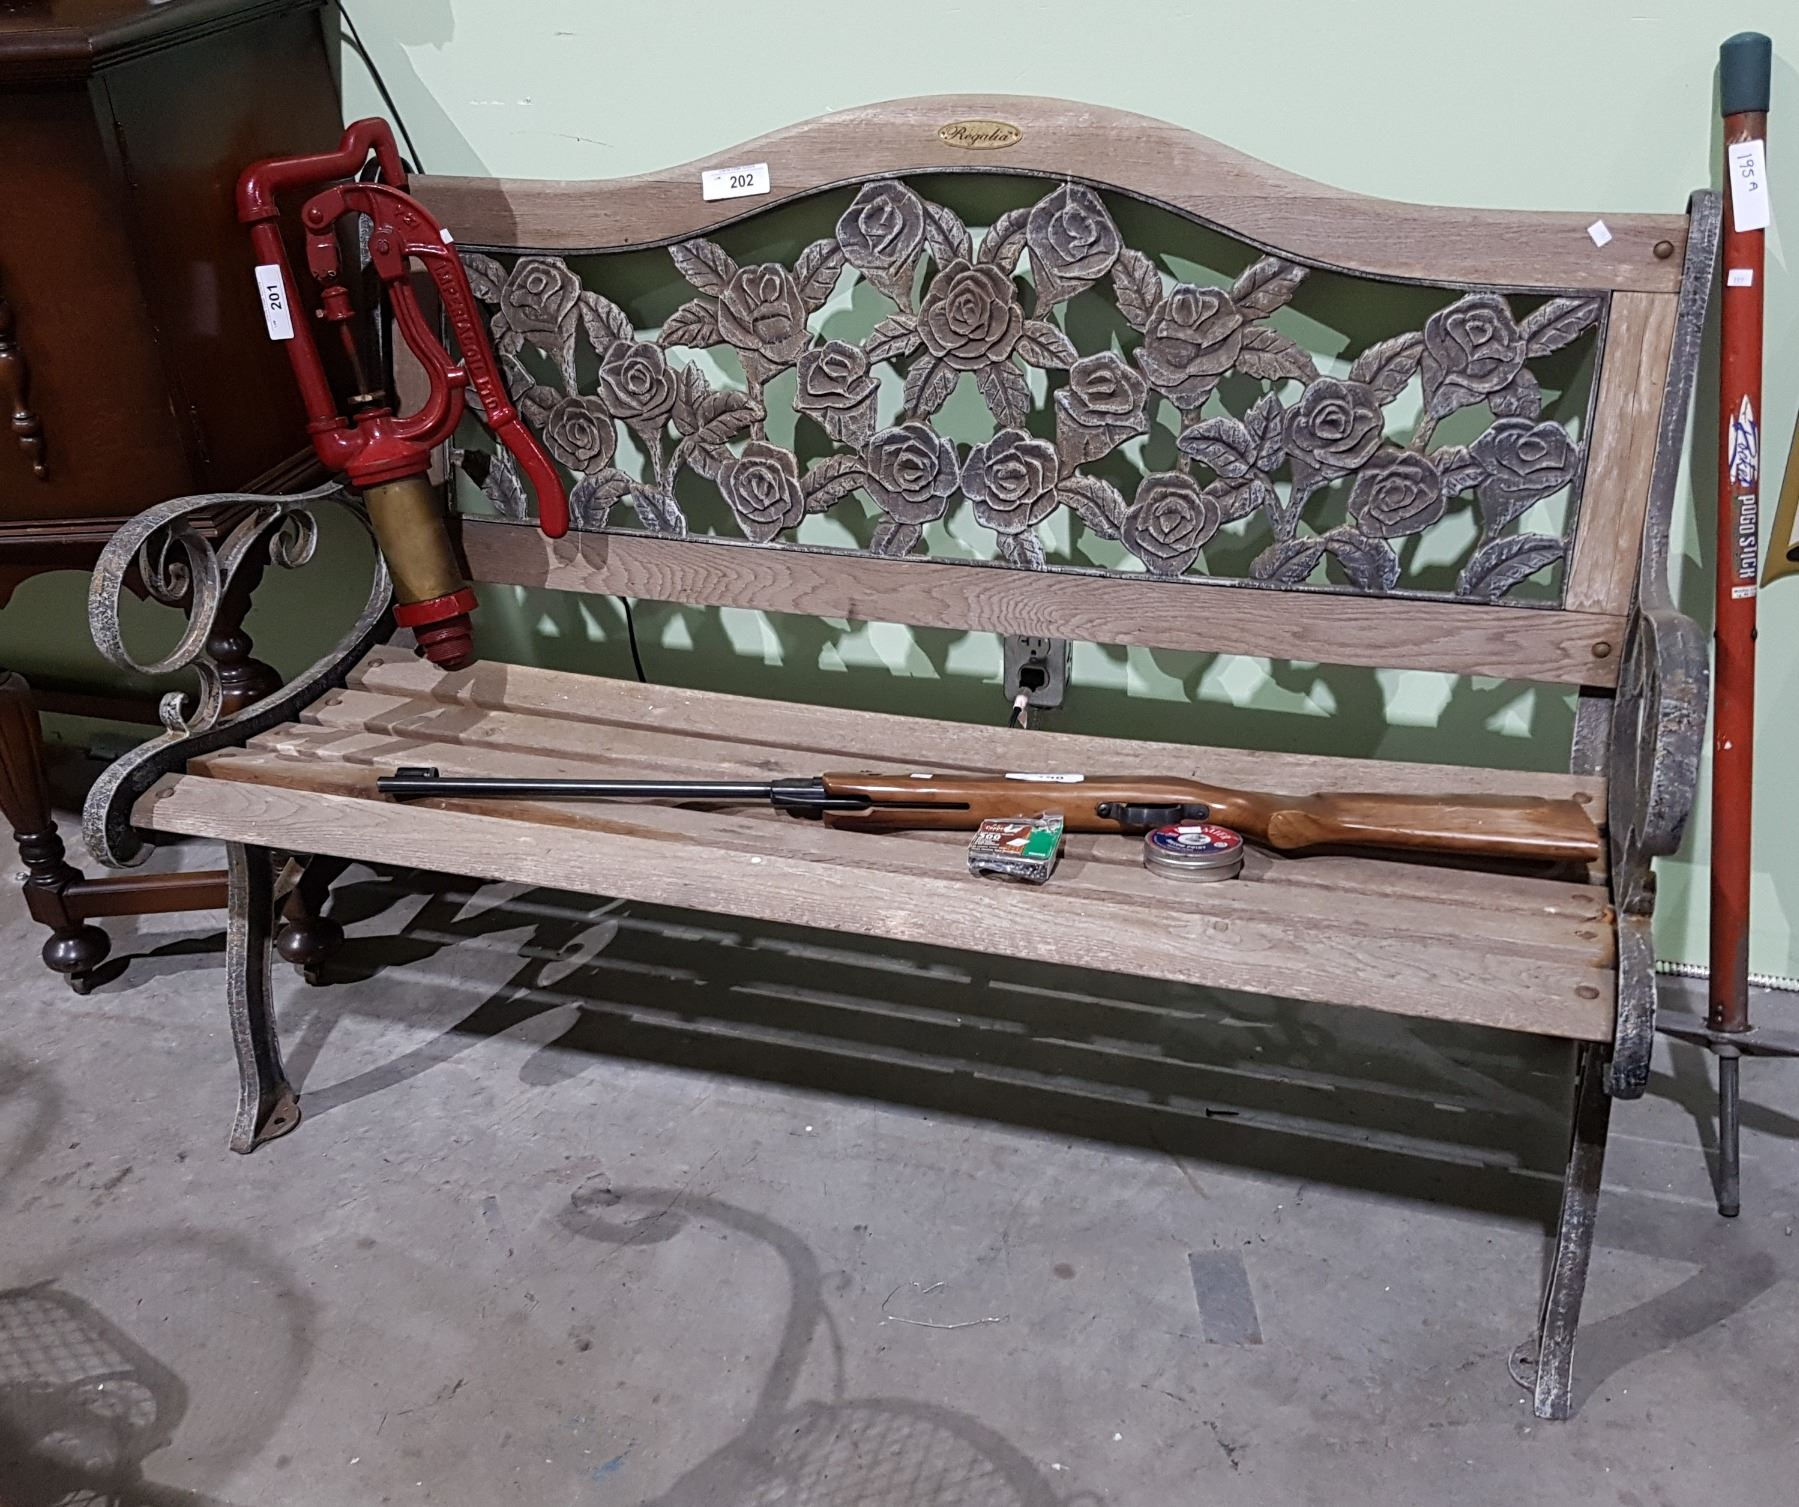 Enjoyable Vintage Wrought Iron And Wood Garden Bench Gmtry Best Dining Table And Chair Ideas Images Gmtryco